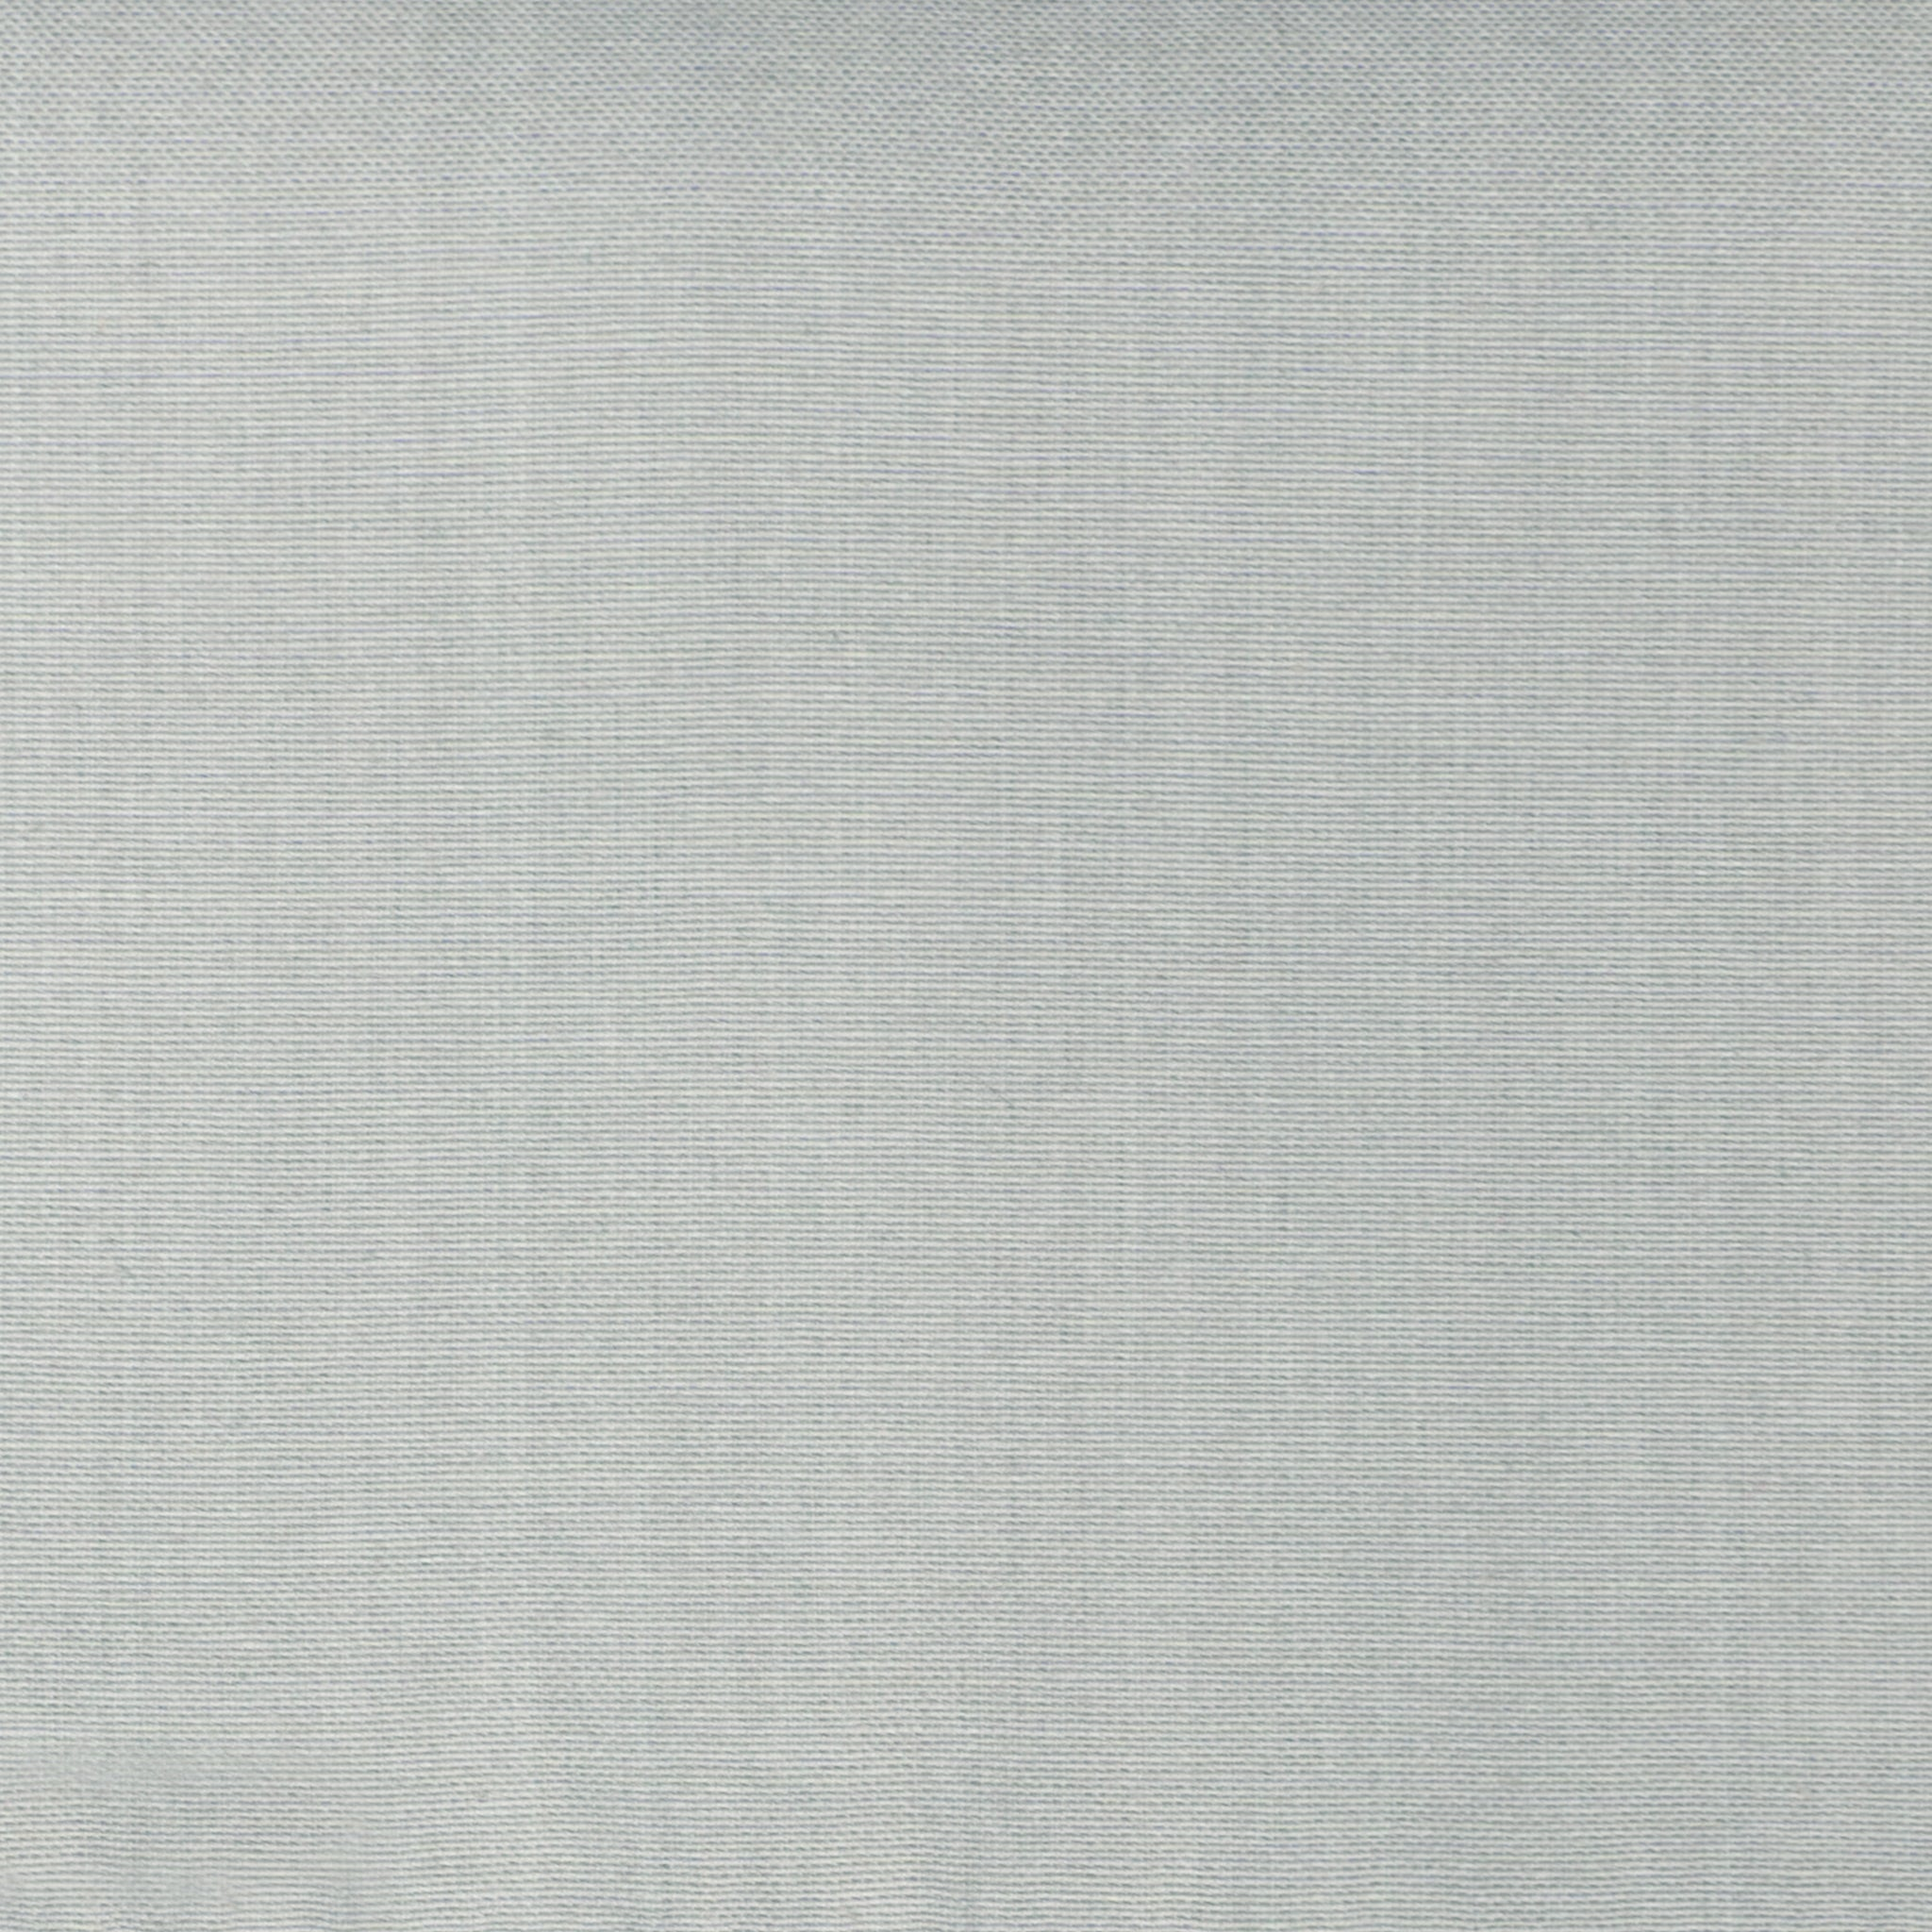 BASICS- FLINT GREY TABLECLOTH